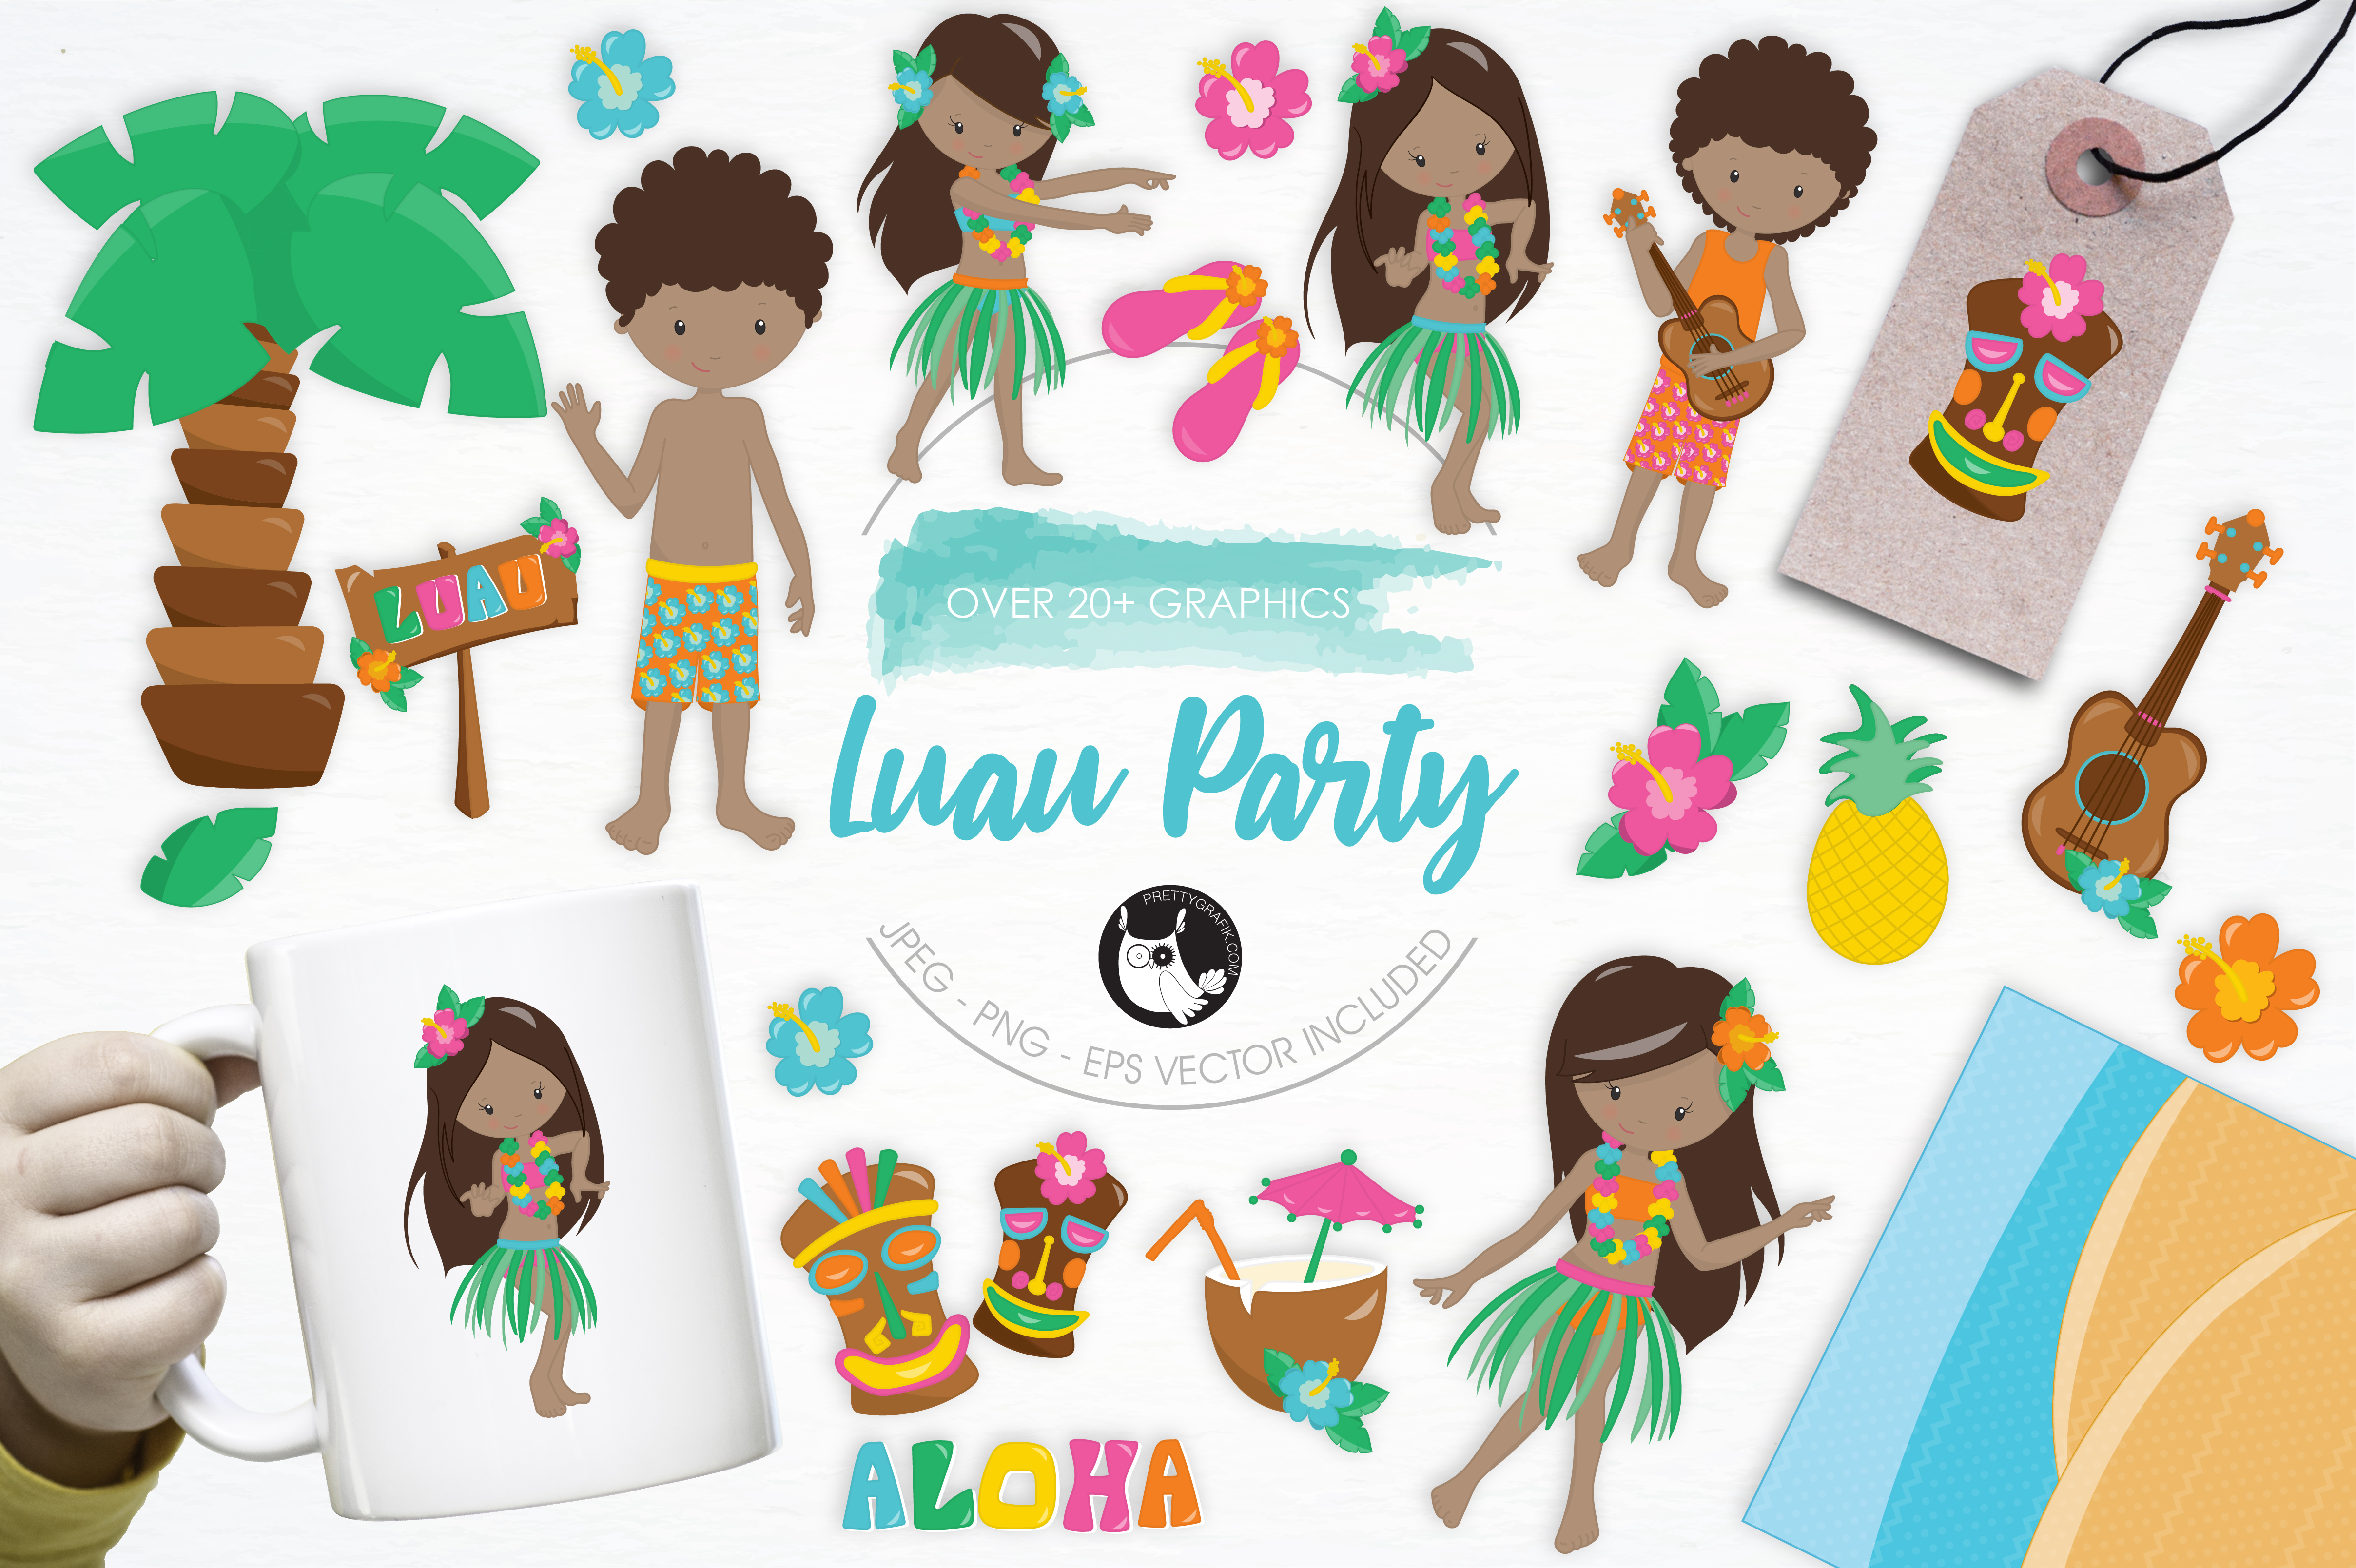 Download Free Luau Party Graphic By Prettygrafik Creative Fabrica for Cricut Explore, Silhouette and other cutting machines.